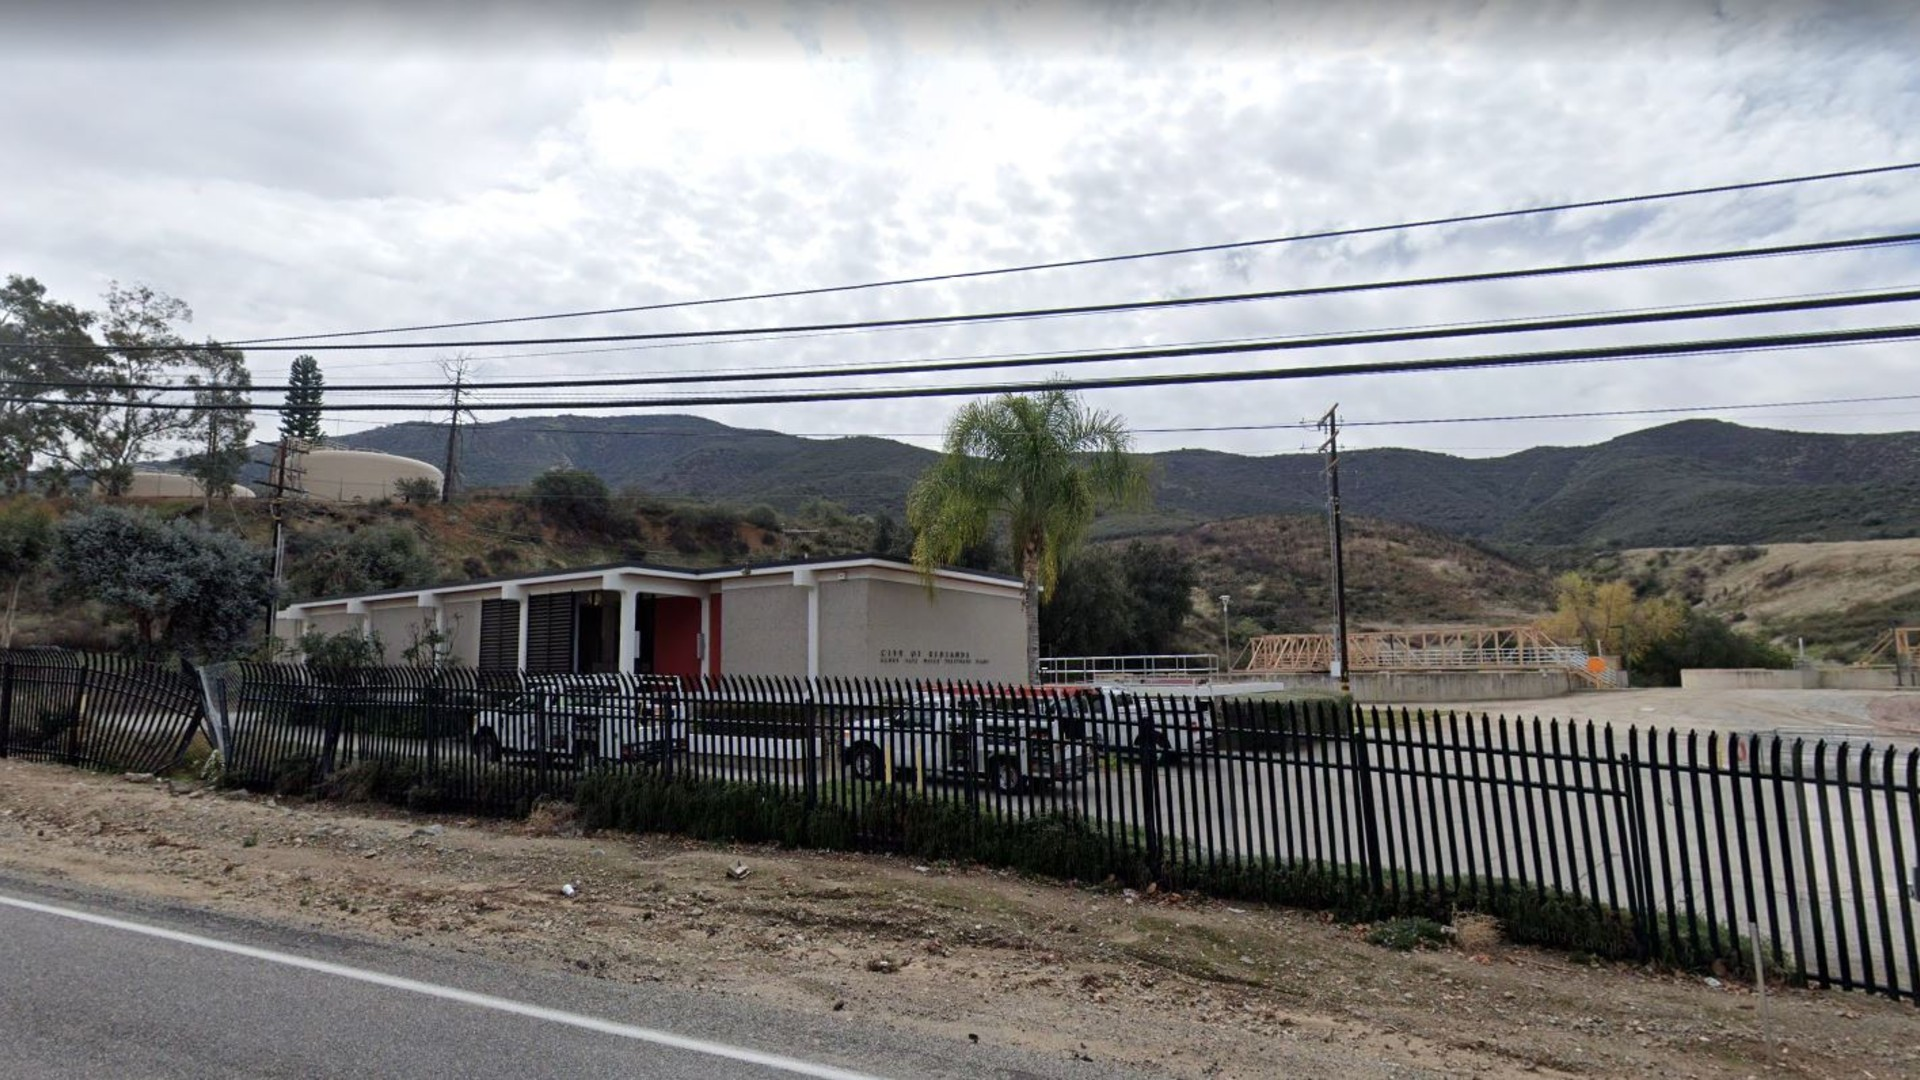 The hillsides above the Redlands city water treatement plant along Highway 38 in Mentone, as pictured in a Google Street view image.